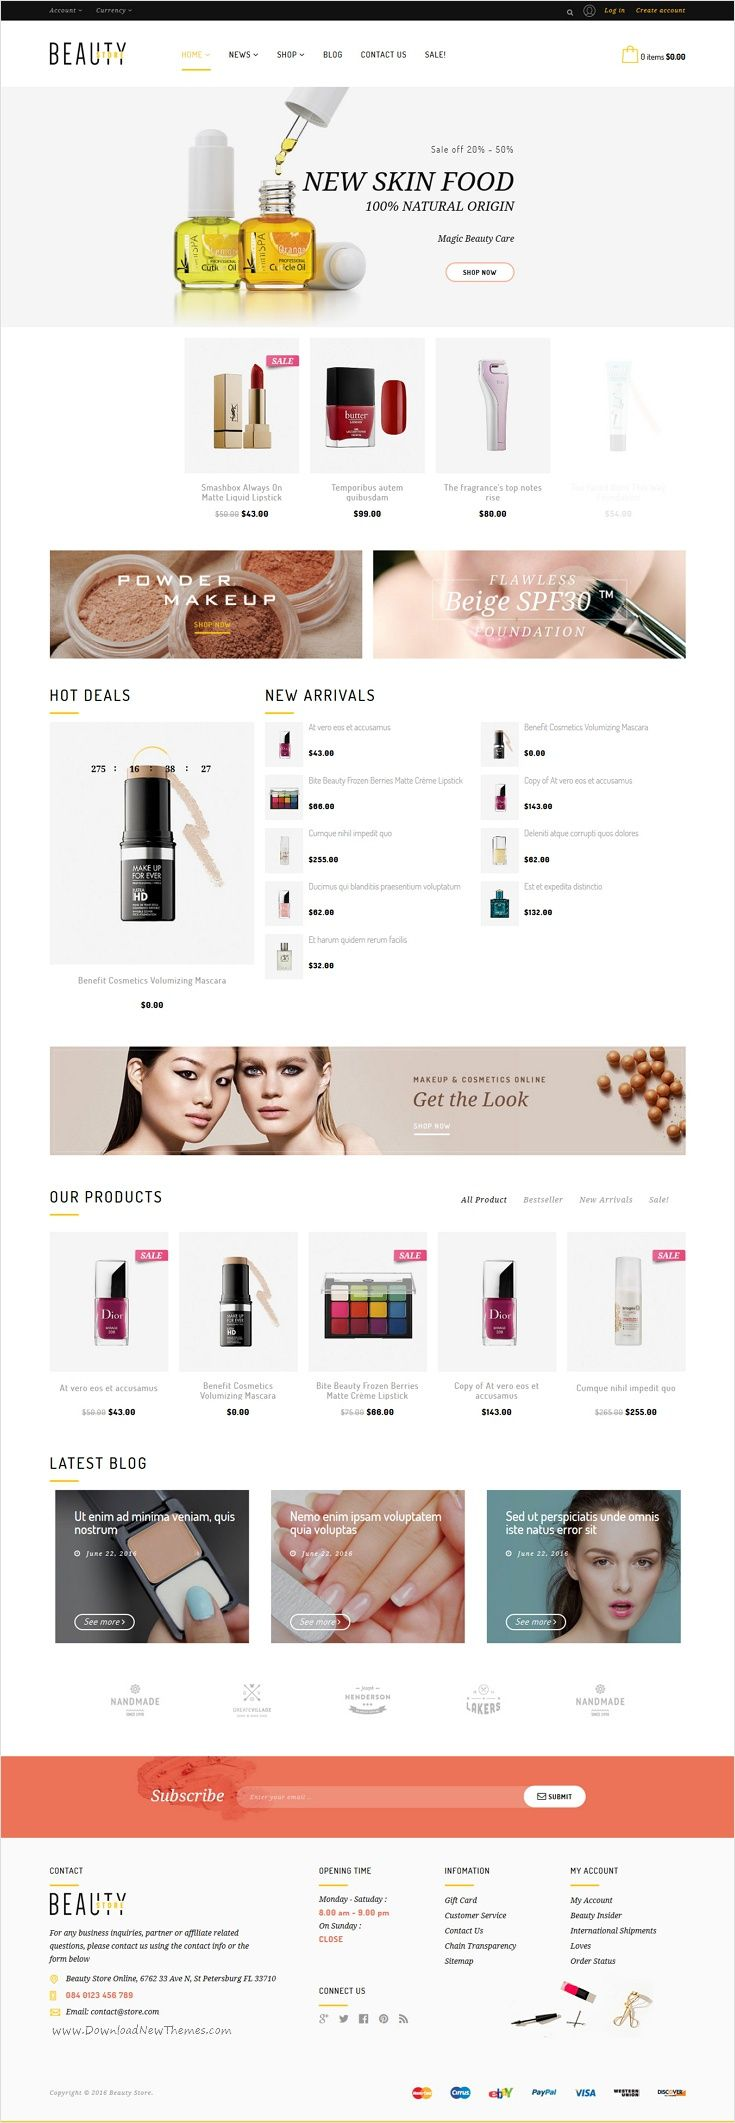 Beauty is an beautifully design advance #Shopify theme for best #cosmetic #shop online eCommerce website with 5 different homepage layouts download now➩ https://themeforest.net/item/beauty-shopify-theme/17377058?ref=Datasata